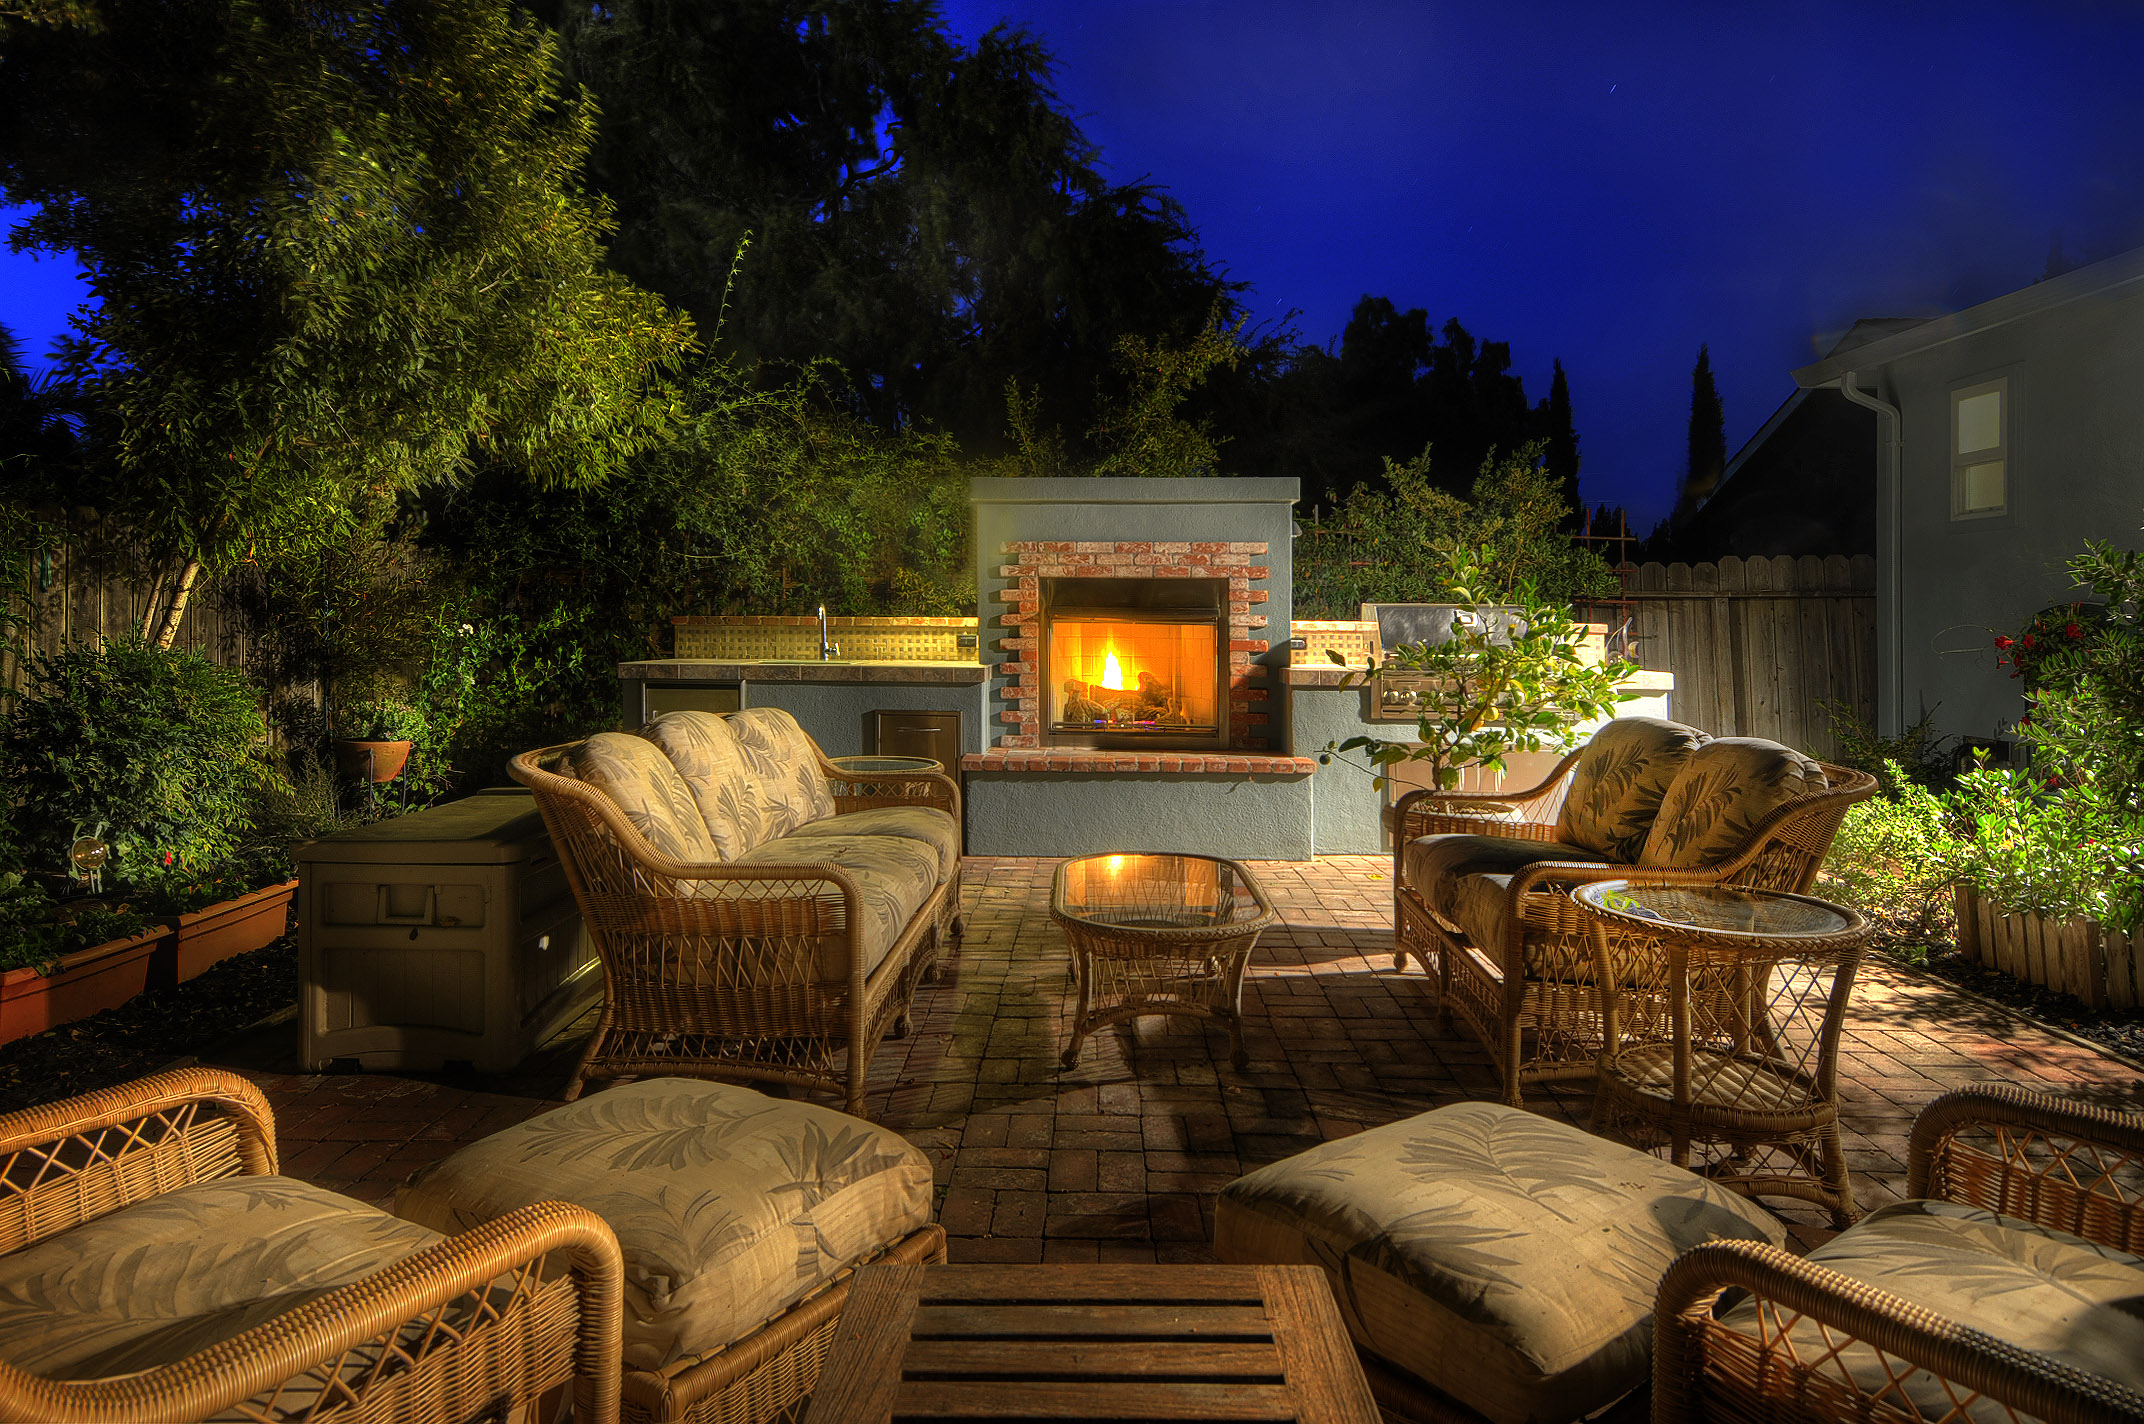 Backyard Parties At Night : Coming This Weekend 1700 Greenwood Avenue, San Carlos ? The White